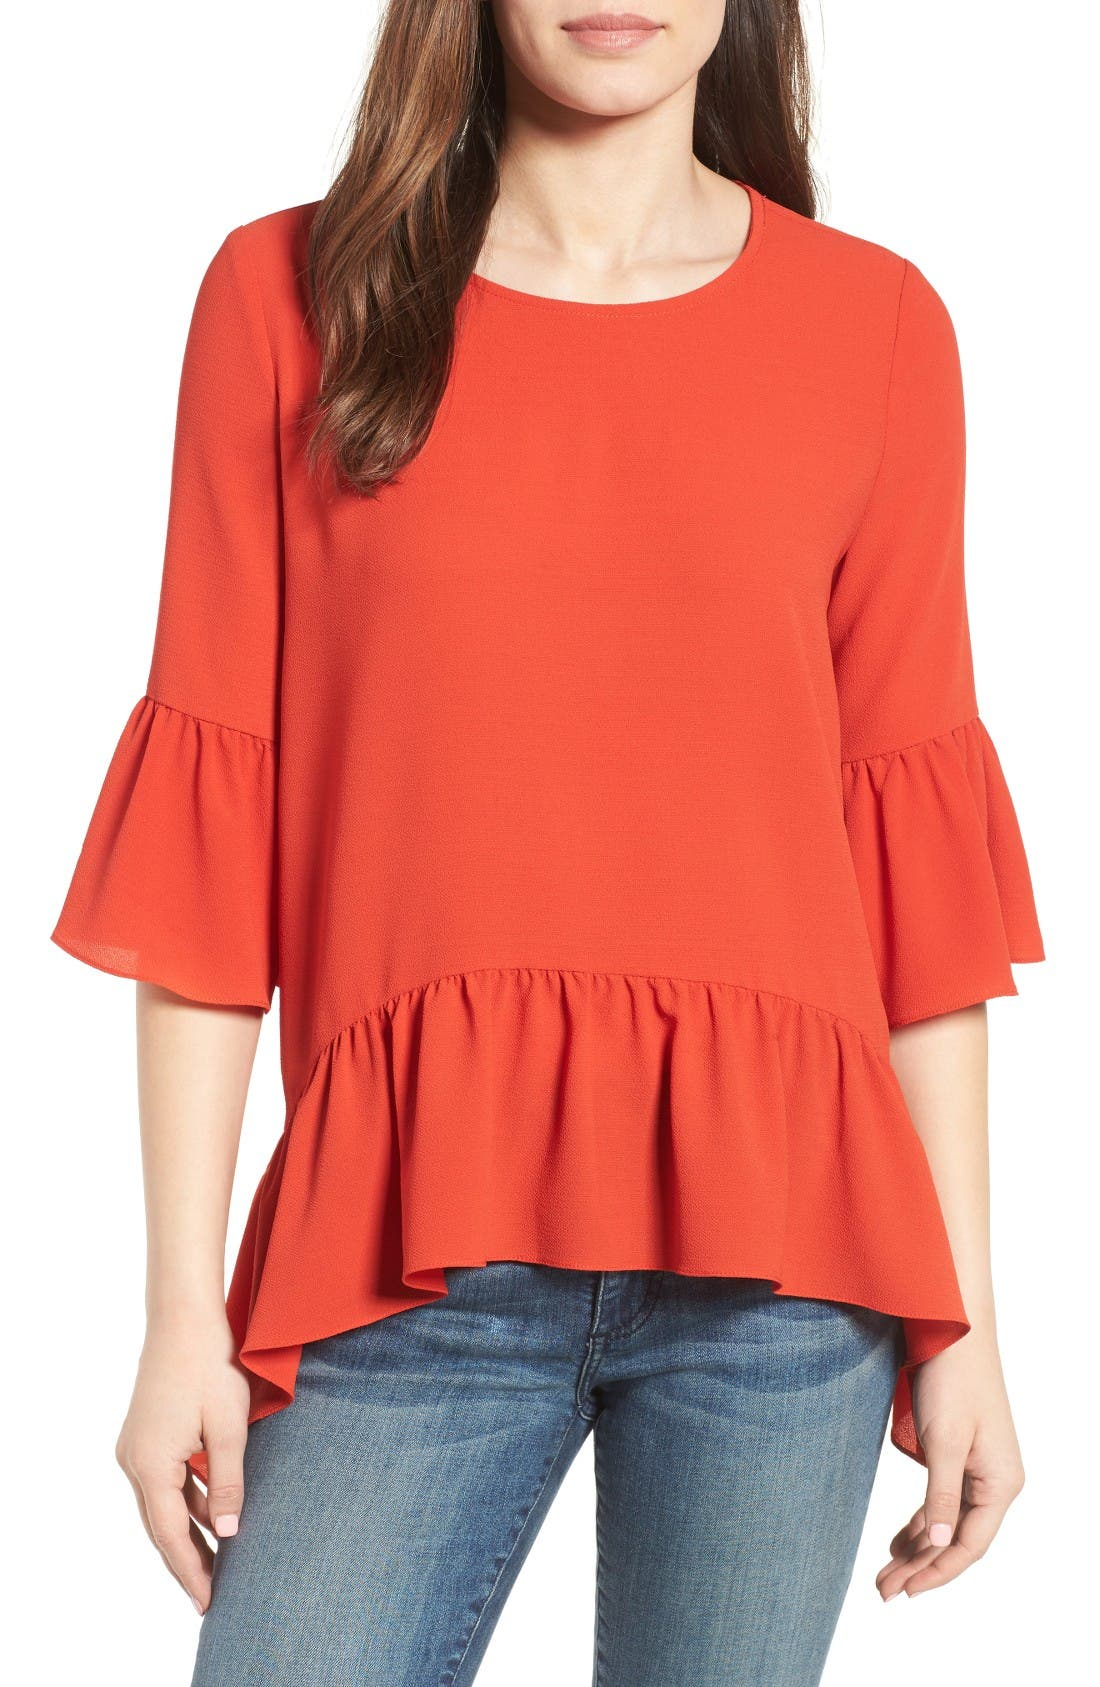 Gibson Ruffled Handkerchief Hem Top (Regular & Petite)